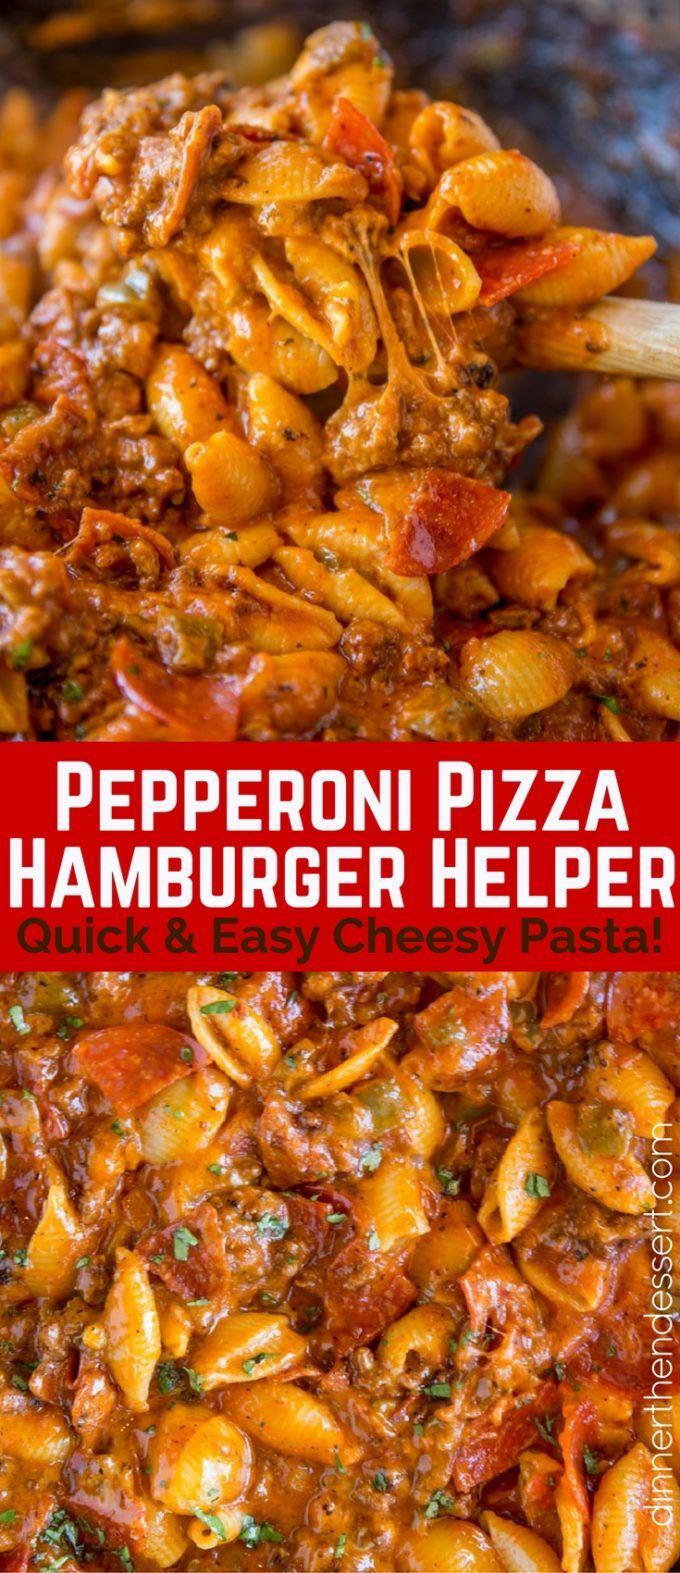 Pepperoni Pizza Hamburger Helper is a quick and easy cheesy pasta that tastes like your favorite pizza and it's ready to eat in just 30 minutes.